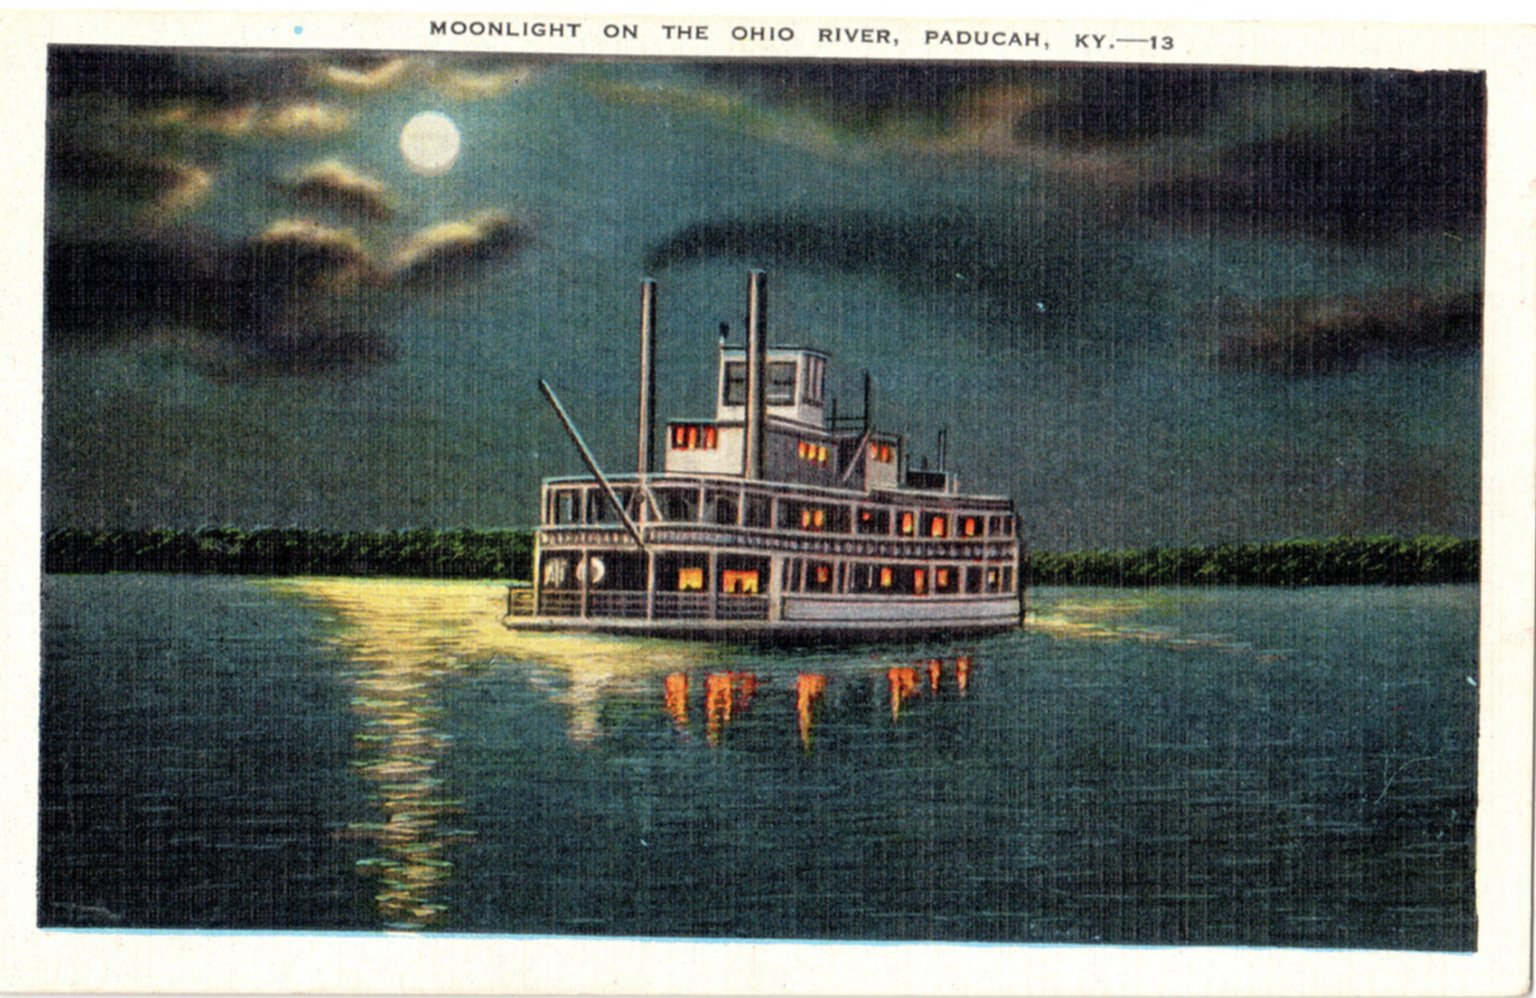 Moonlight On The Ohio River, Paducah, KT. -13